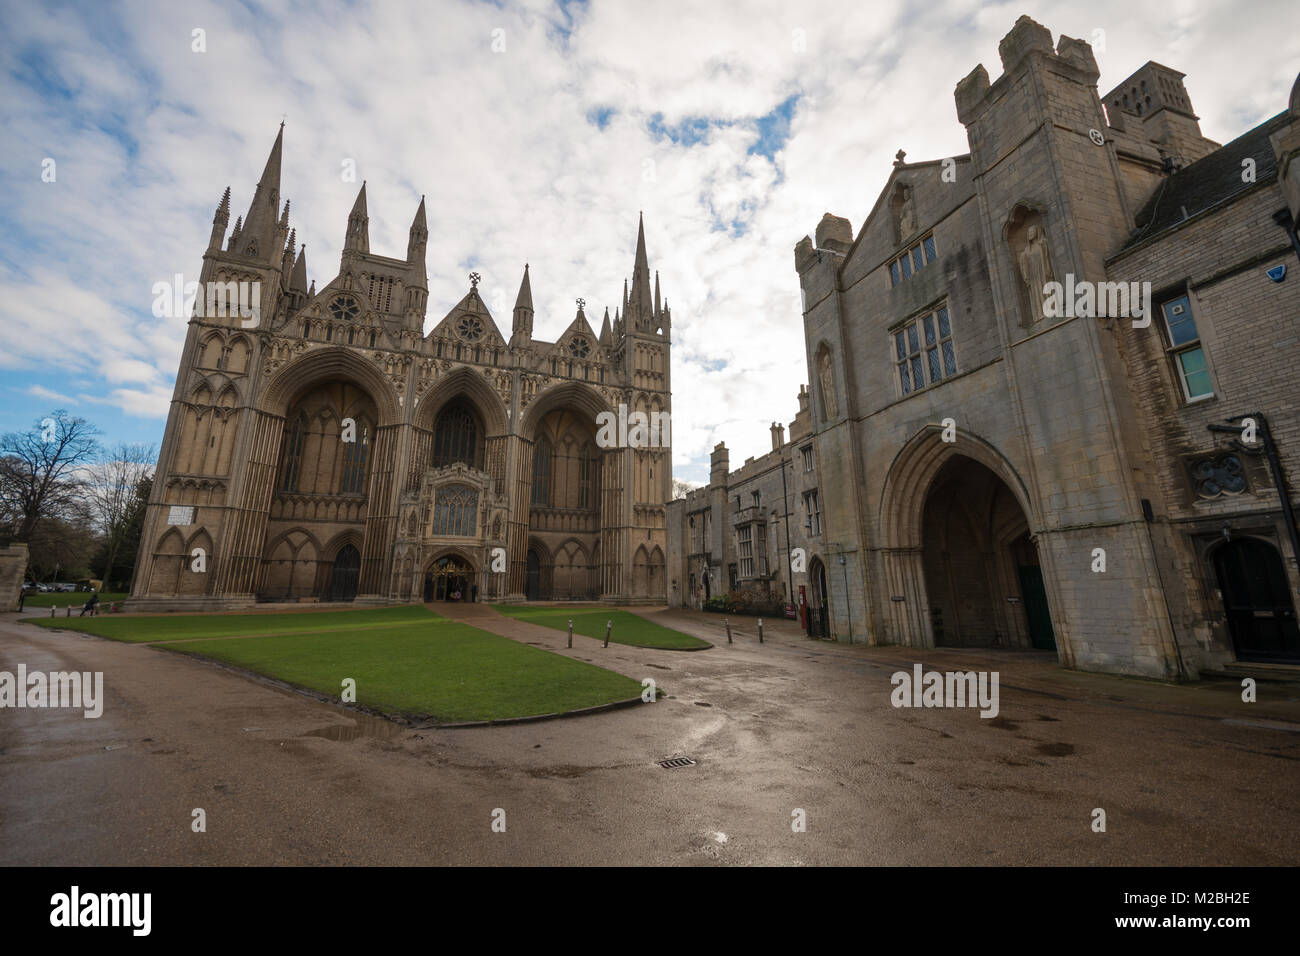 Peterborough Cathedral, Peterborough, Cambridgeshire. UK - Stock Image